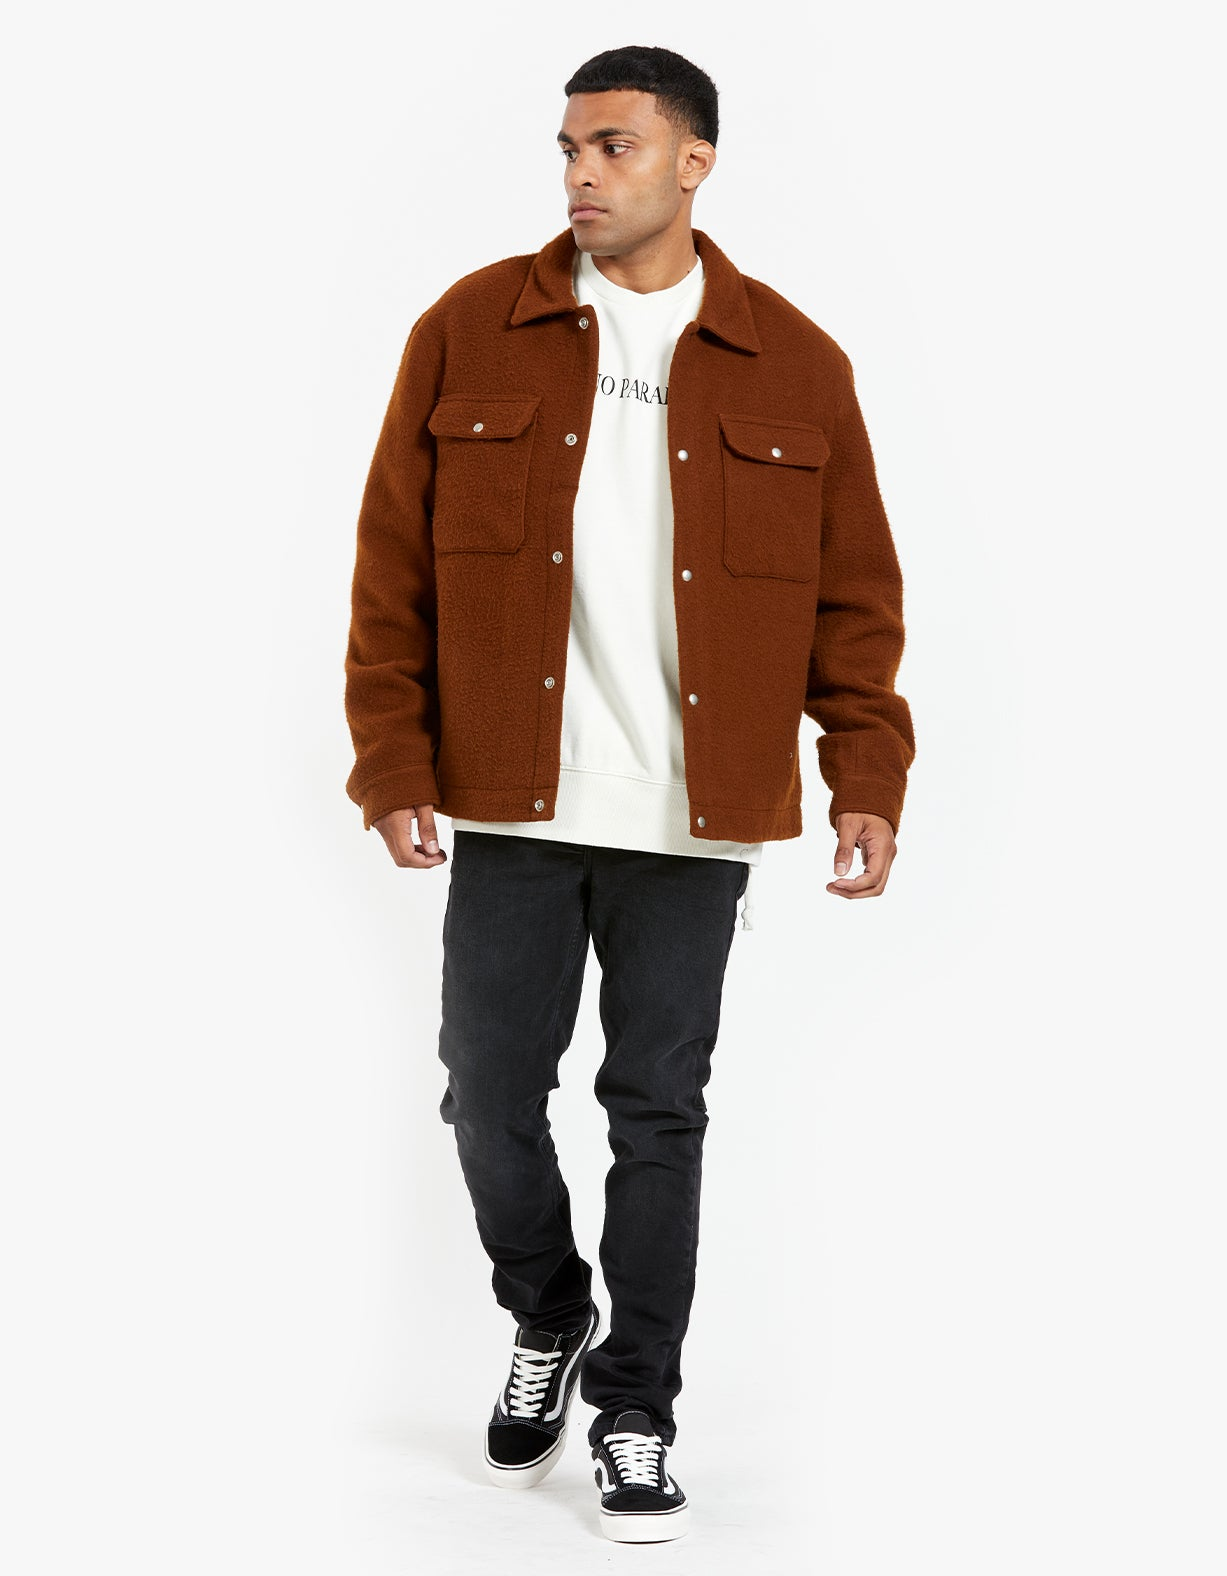 Minard Jacket - Brown